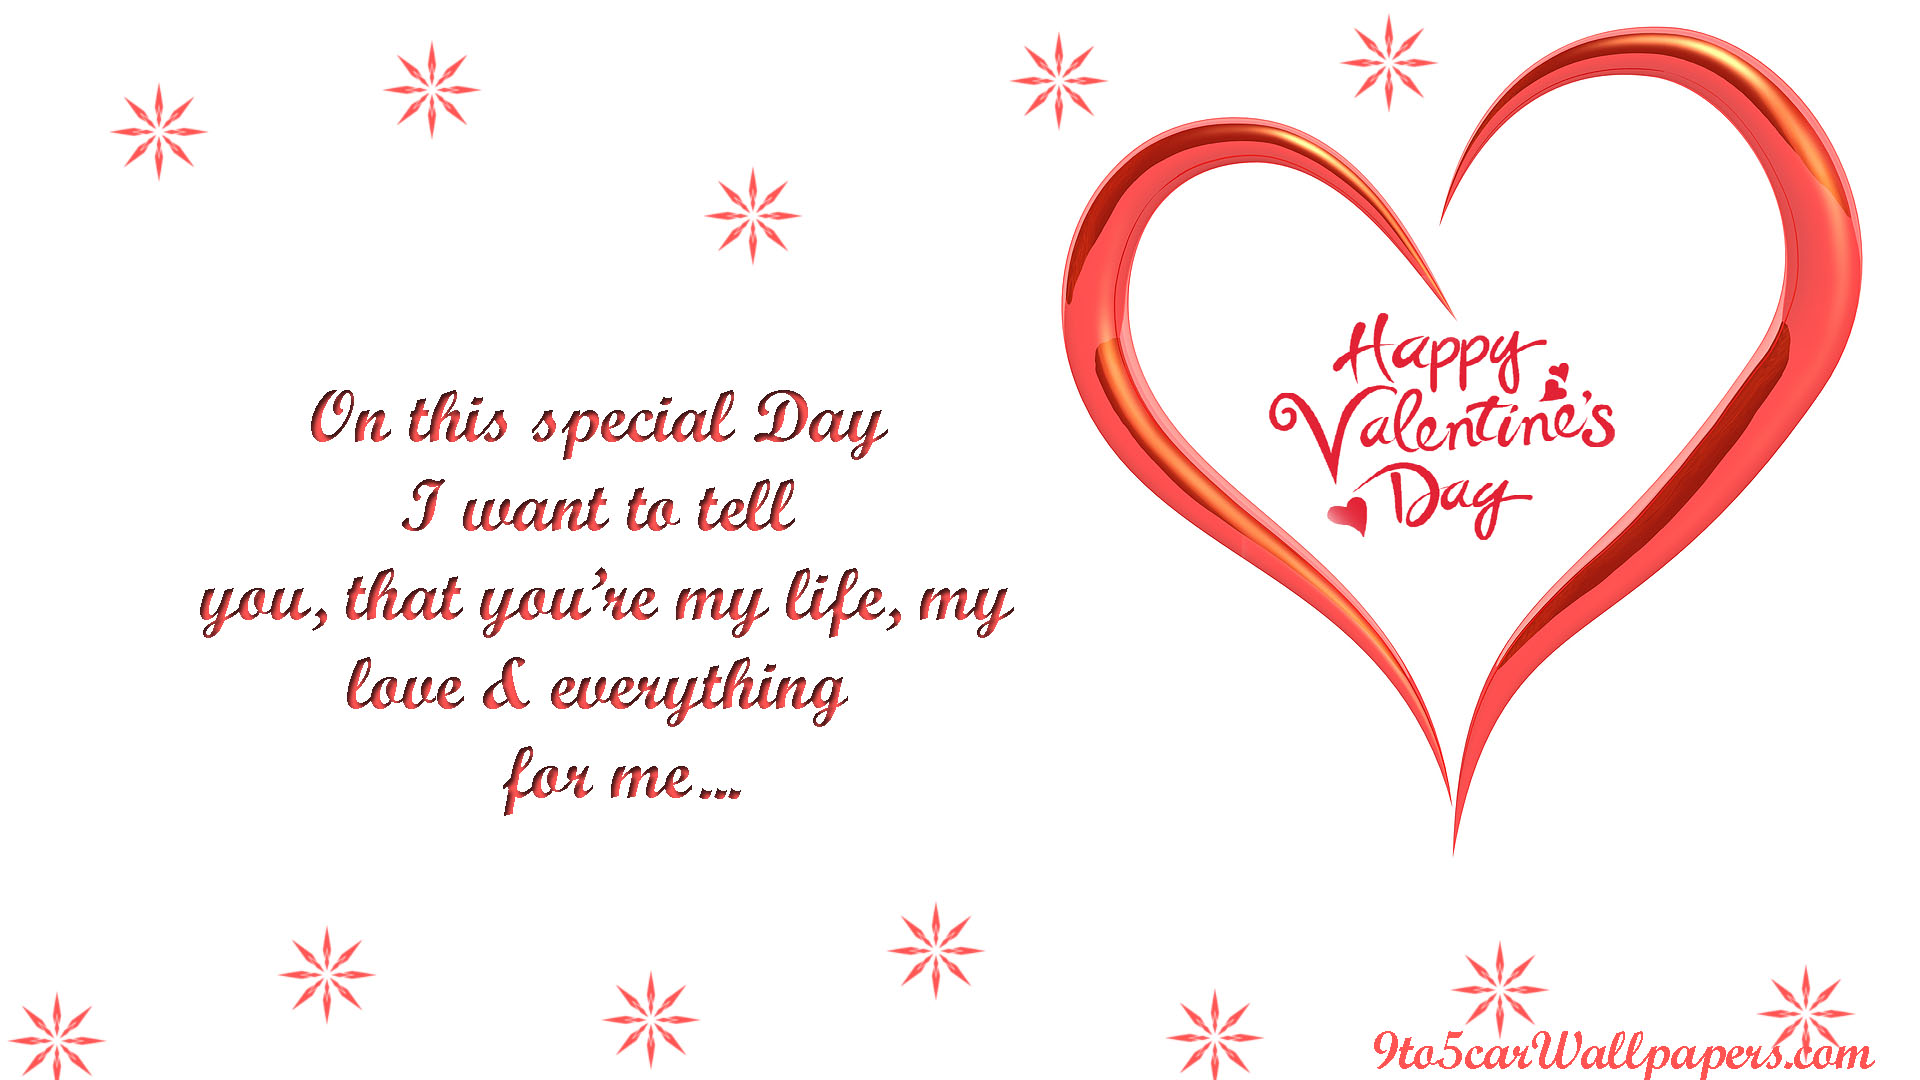 valentines-day-wishes-Auotes